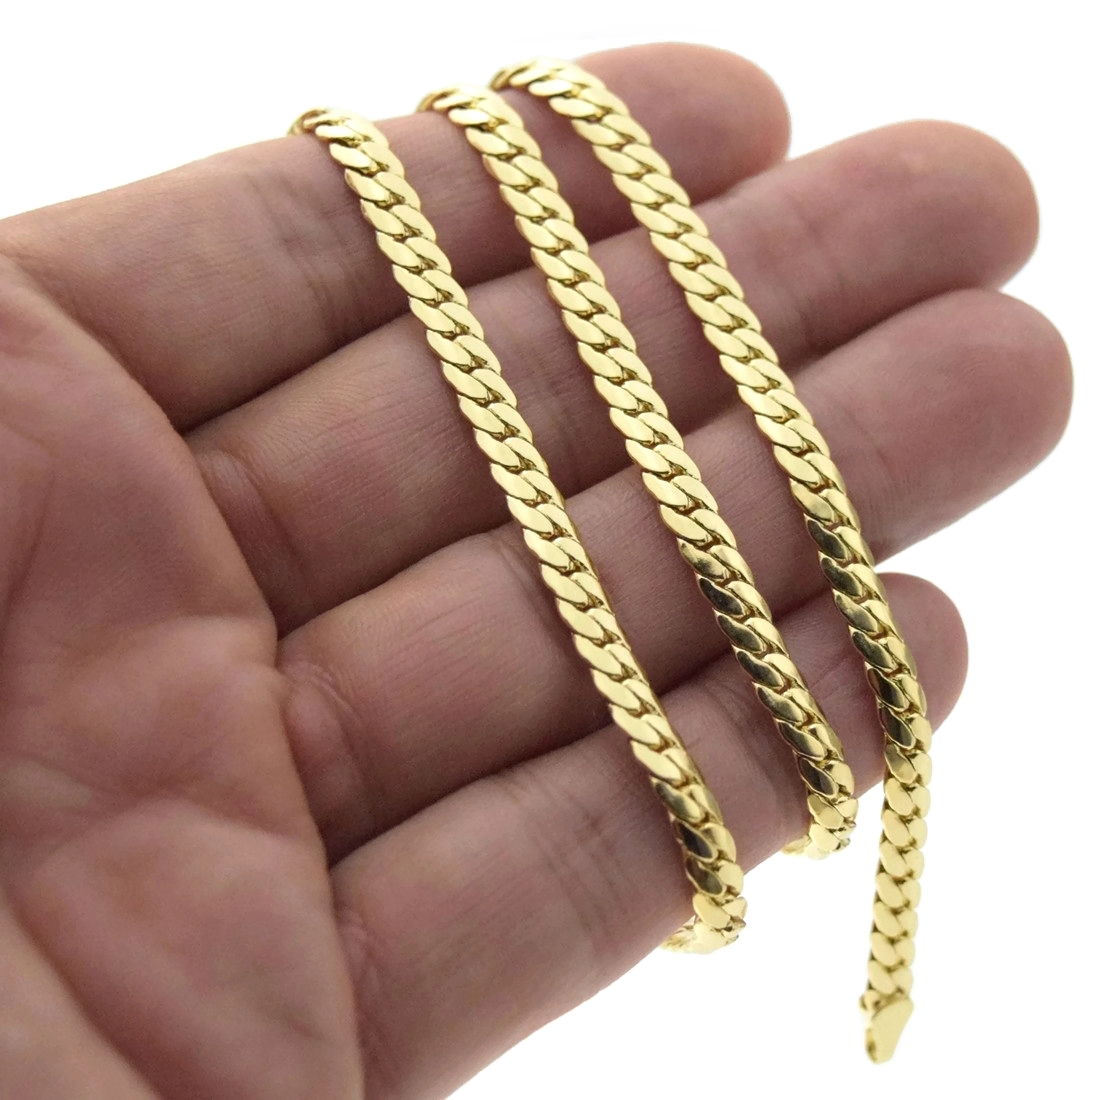 Miami Cuban Gold Chain 20 Quot 5mm Chains